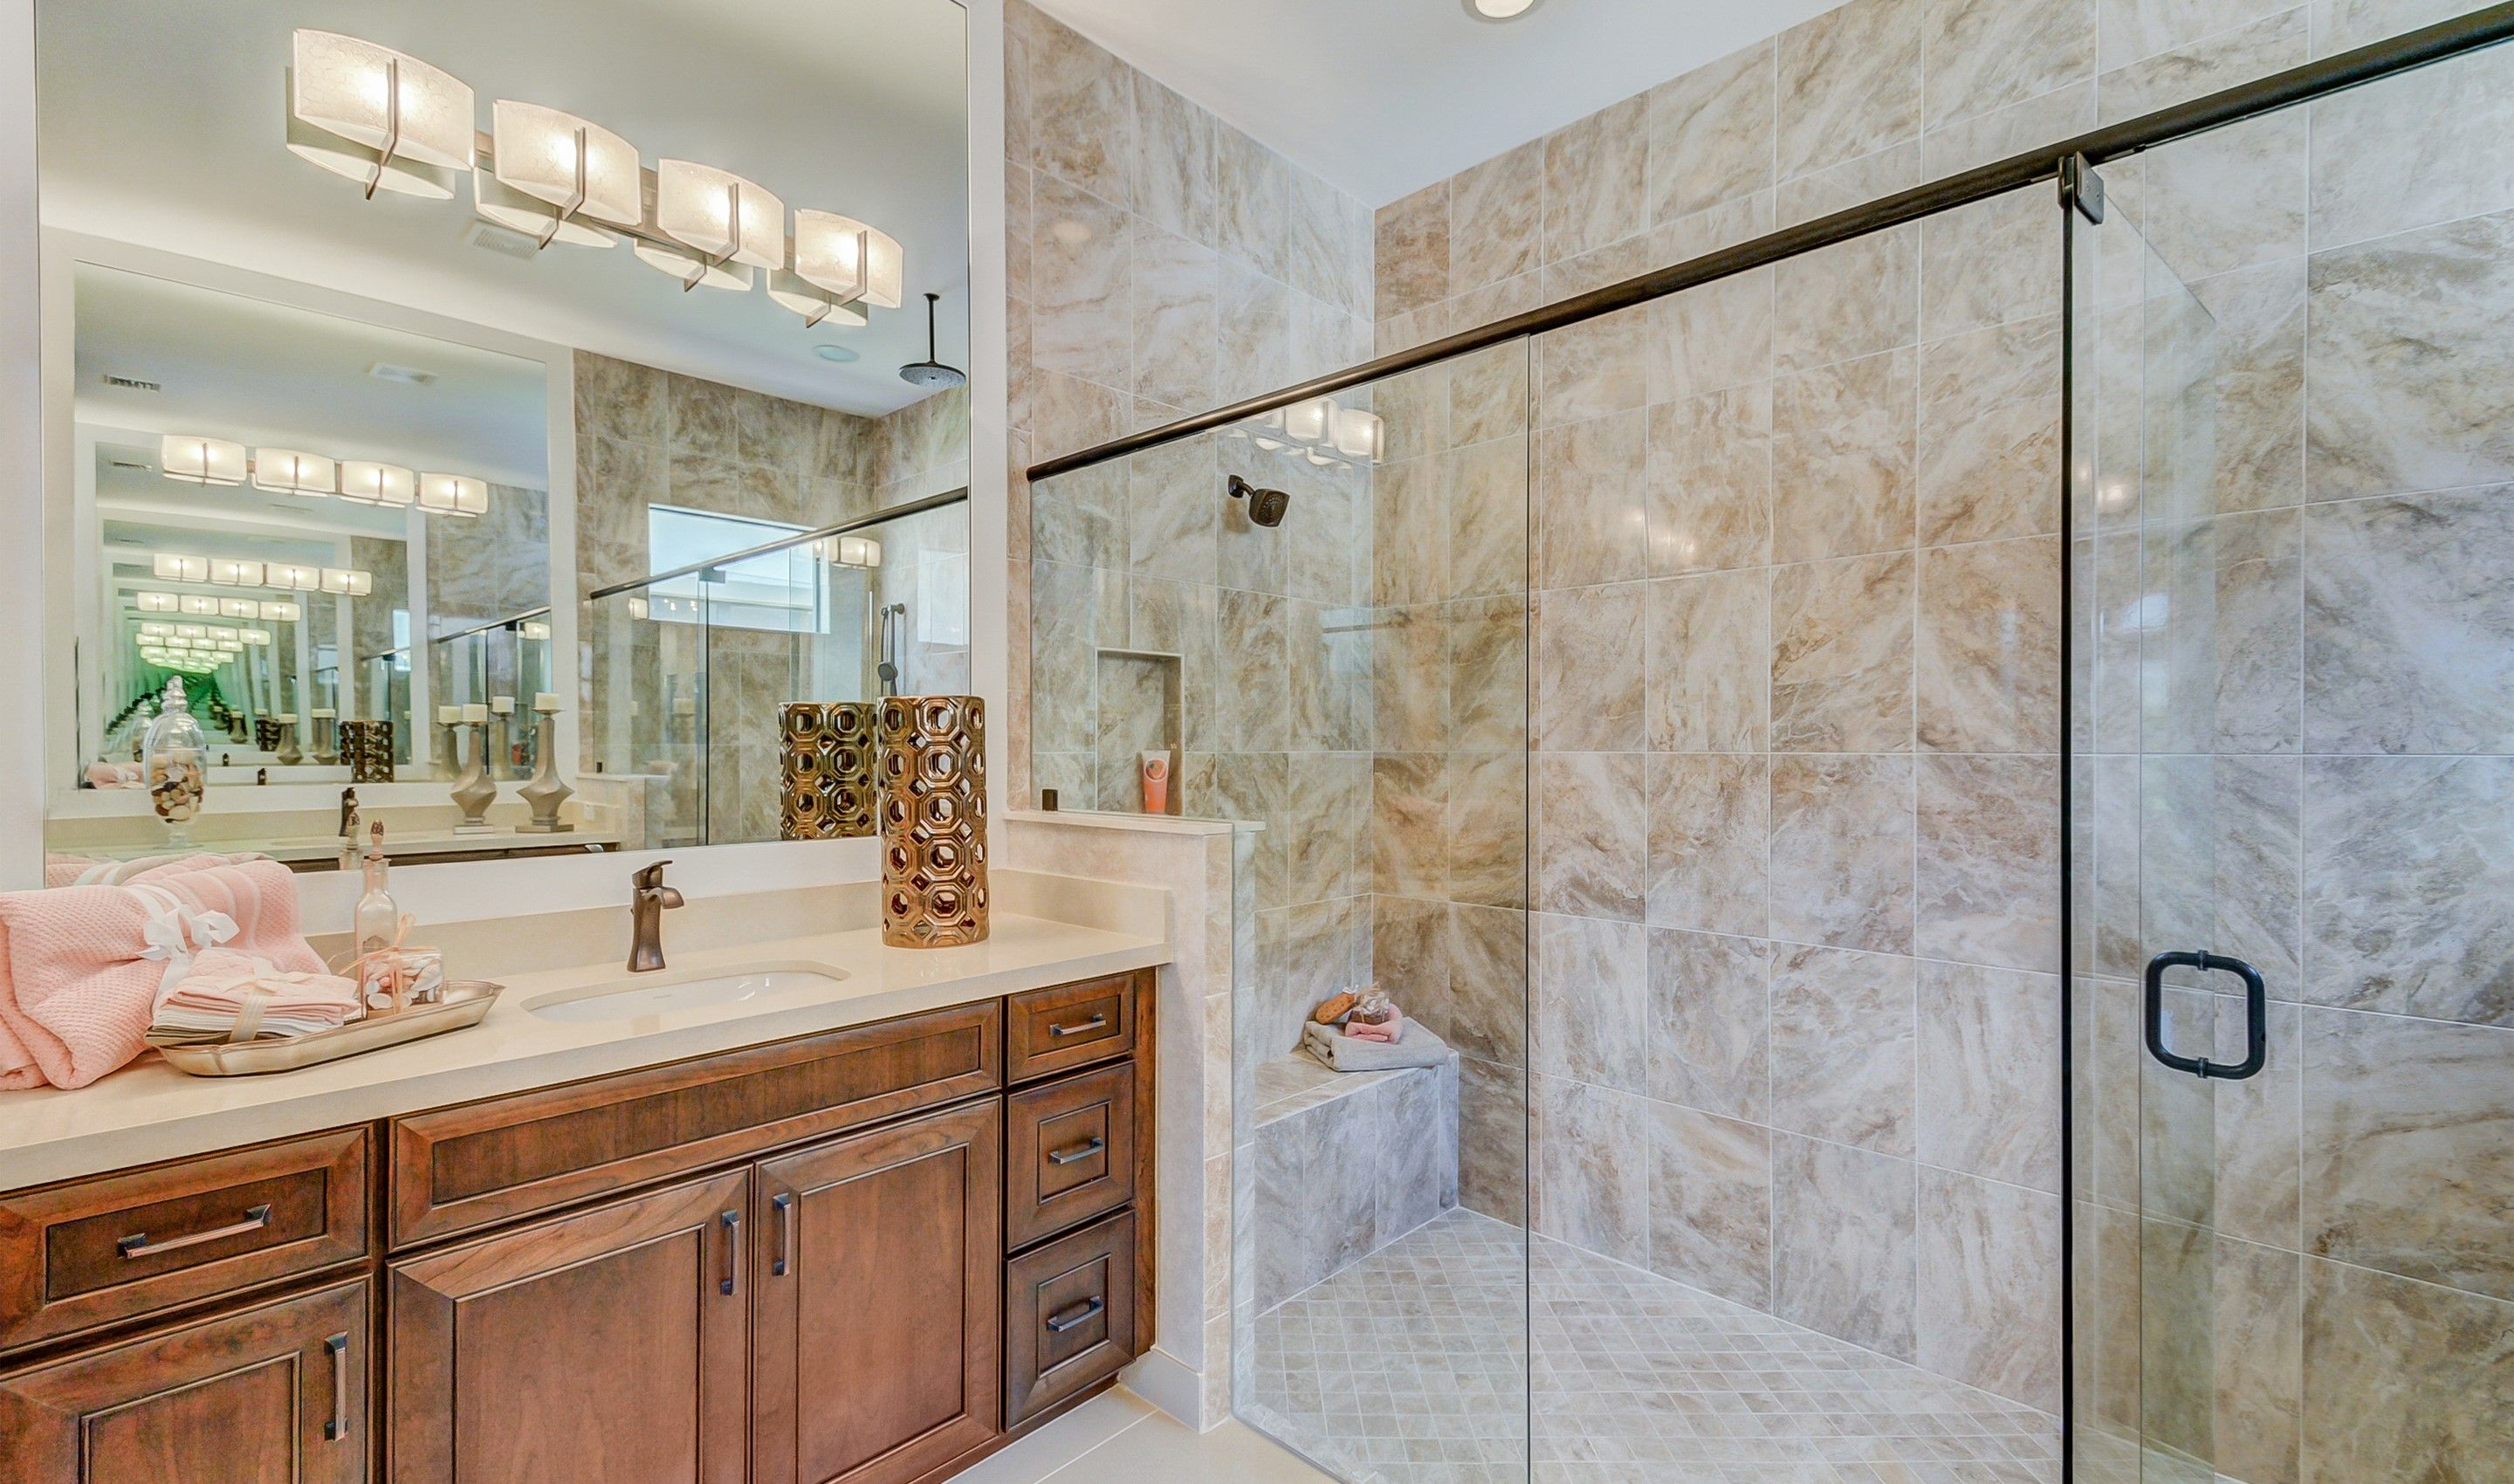 Bathroom featured in the Vera By K. Hovnanian's® Four Seasons in Broward County-Ft. Lauderdale, FL